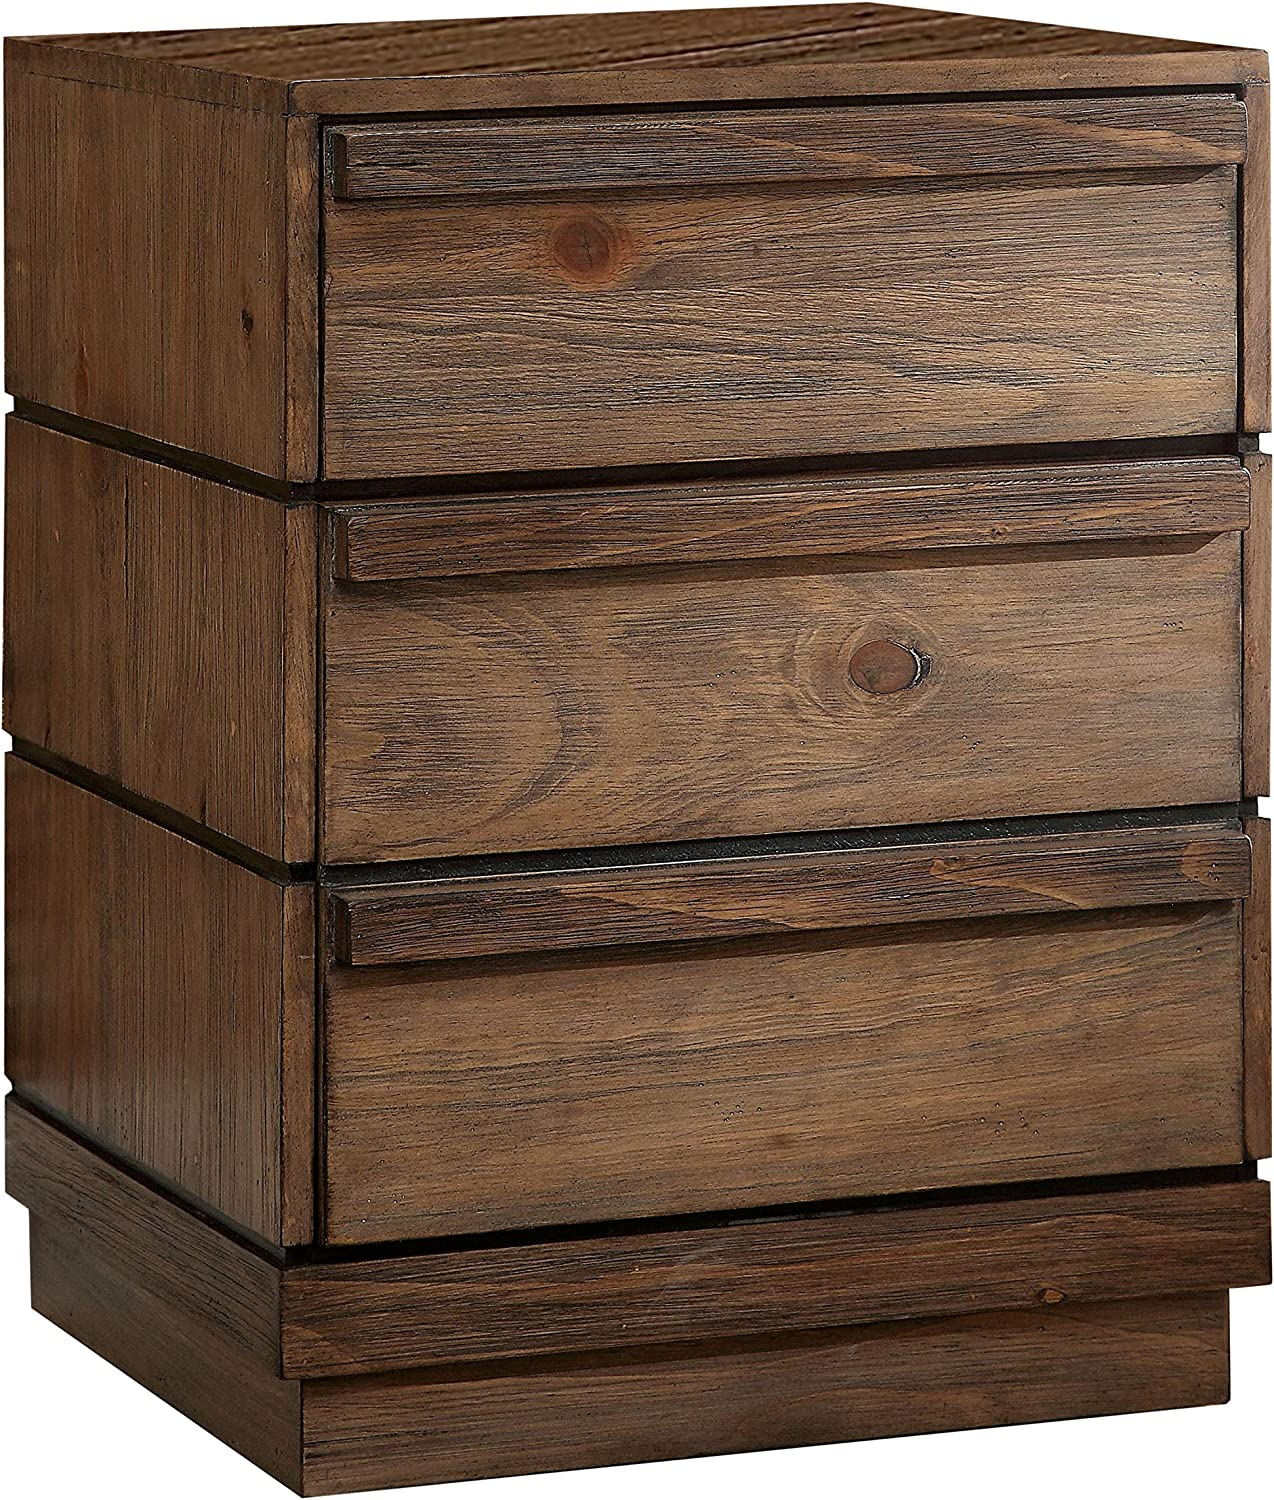 William's Home Furnishing Coimbra Nightstands, Brown